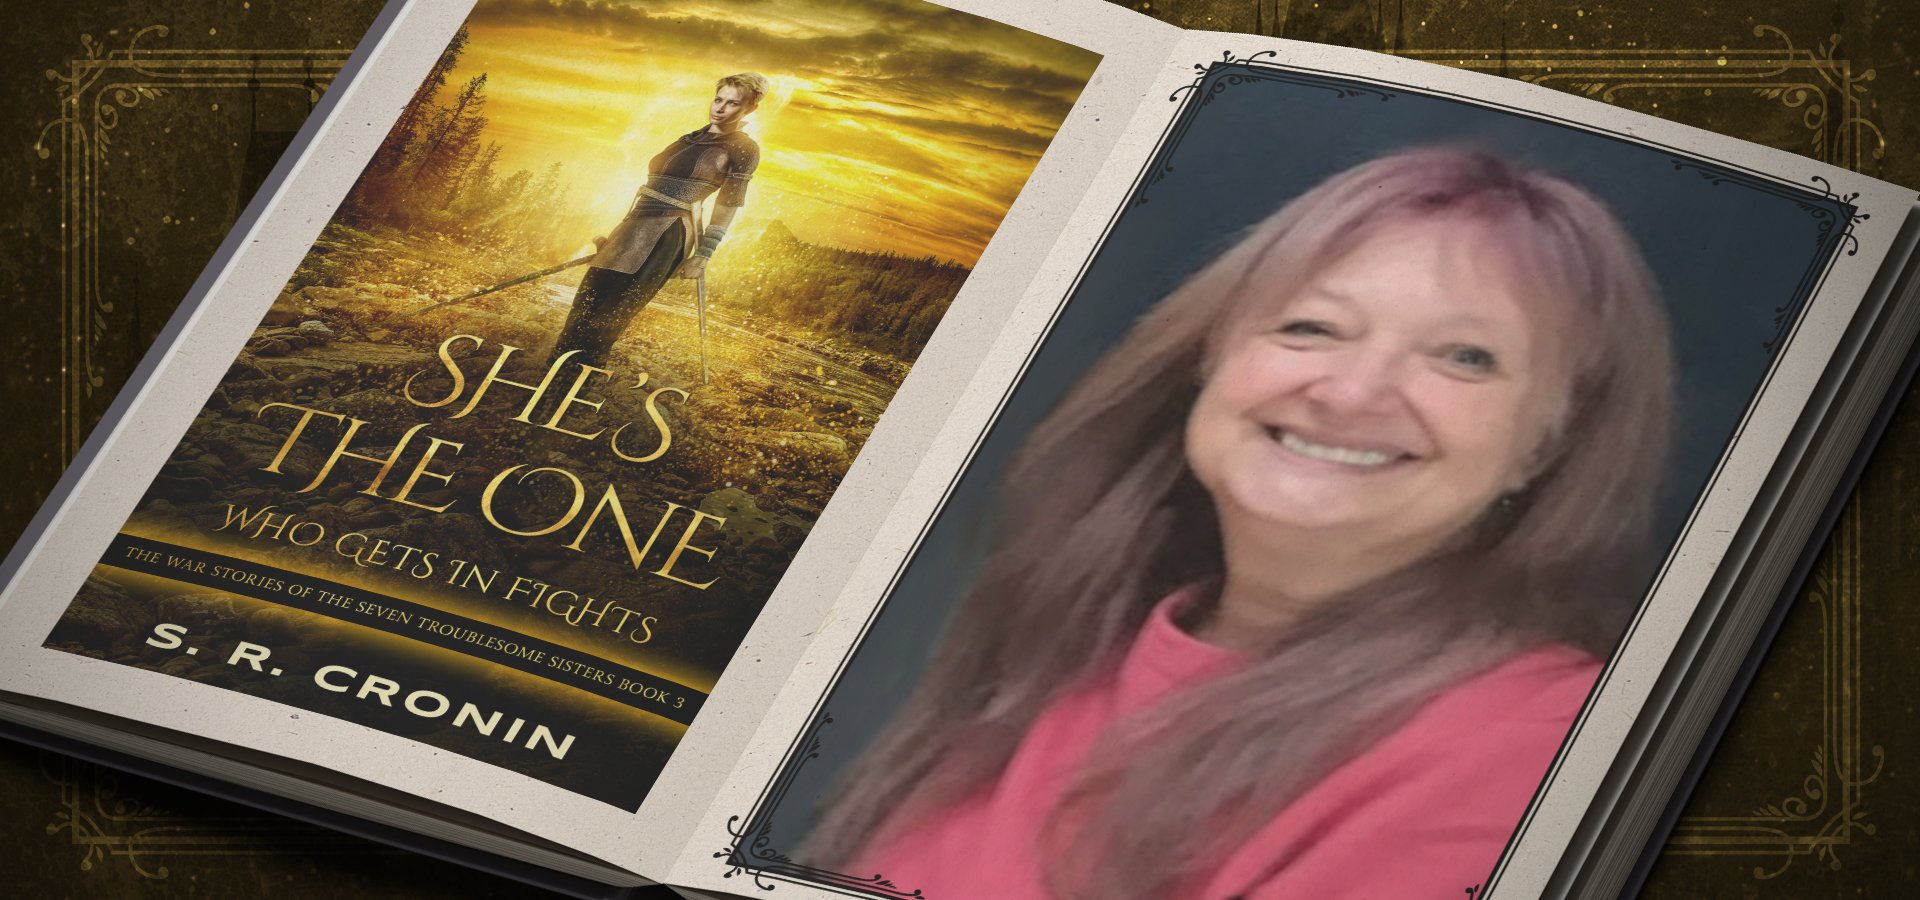 She's the One Who Gets in Fights by S. R. Cronin